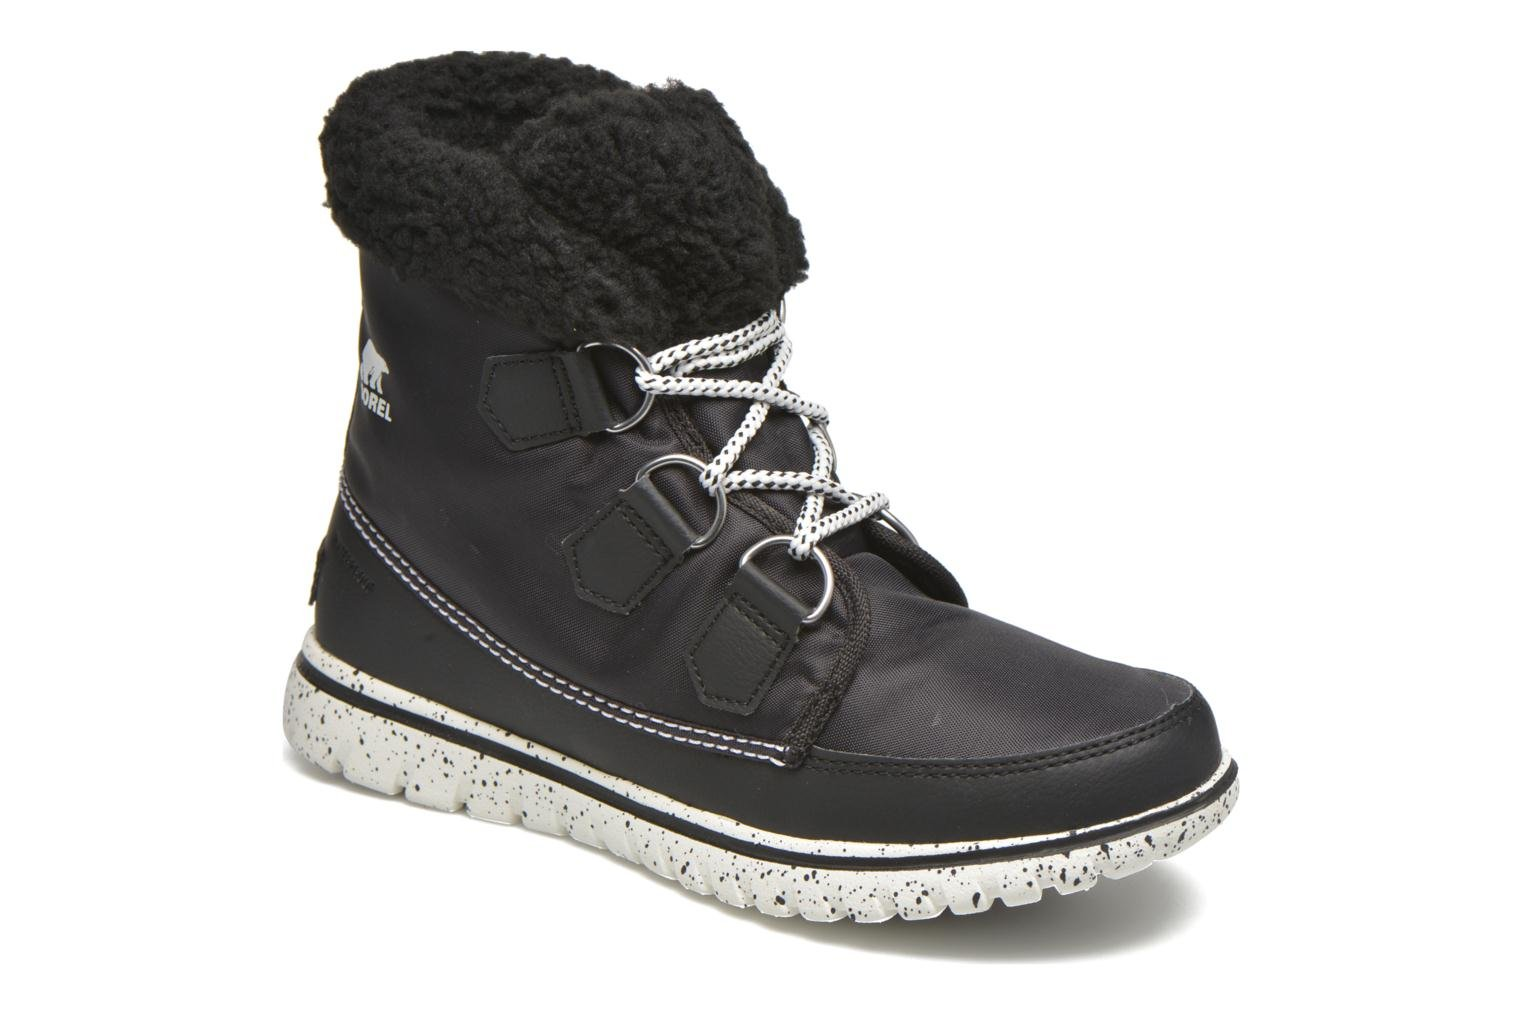 Sorel Bottines Cozy Carnival Noir yicuuW8G